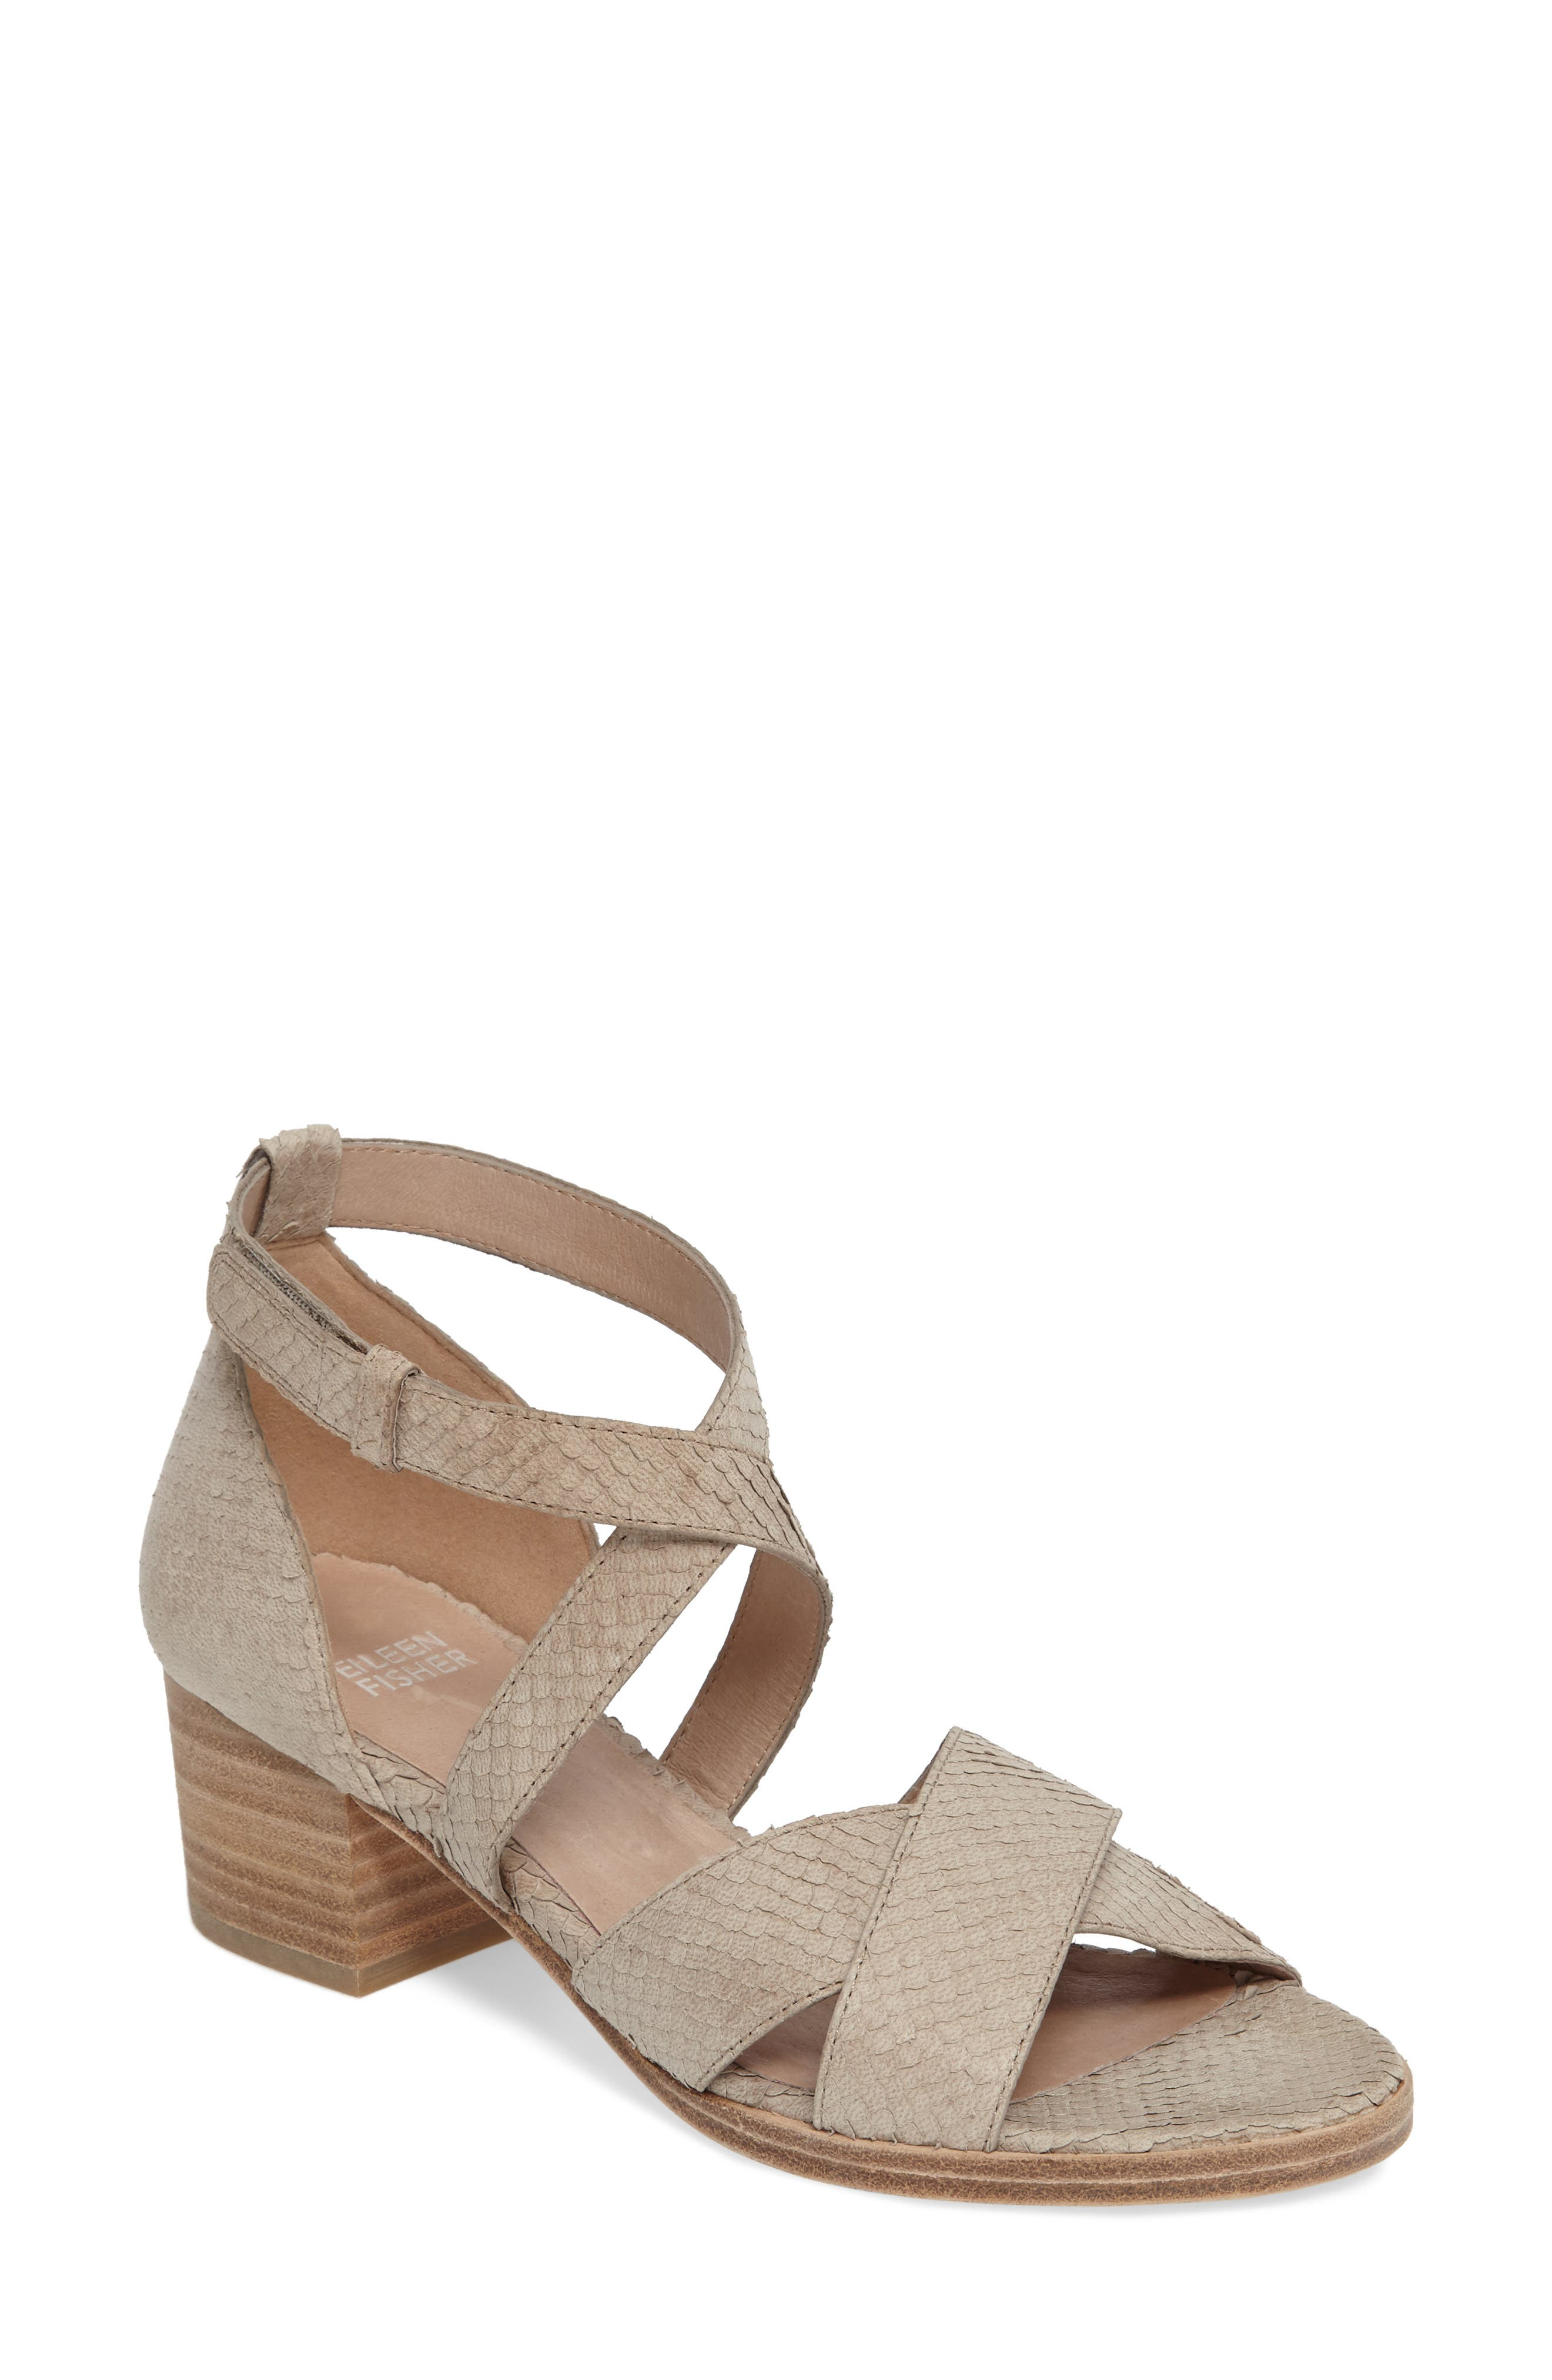 Main Image - Eileen Fisher Kerby Sandal (Women)